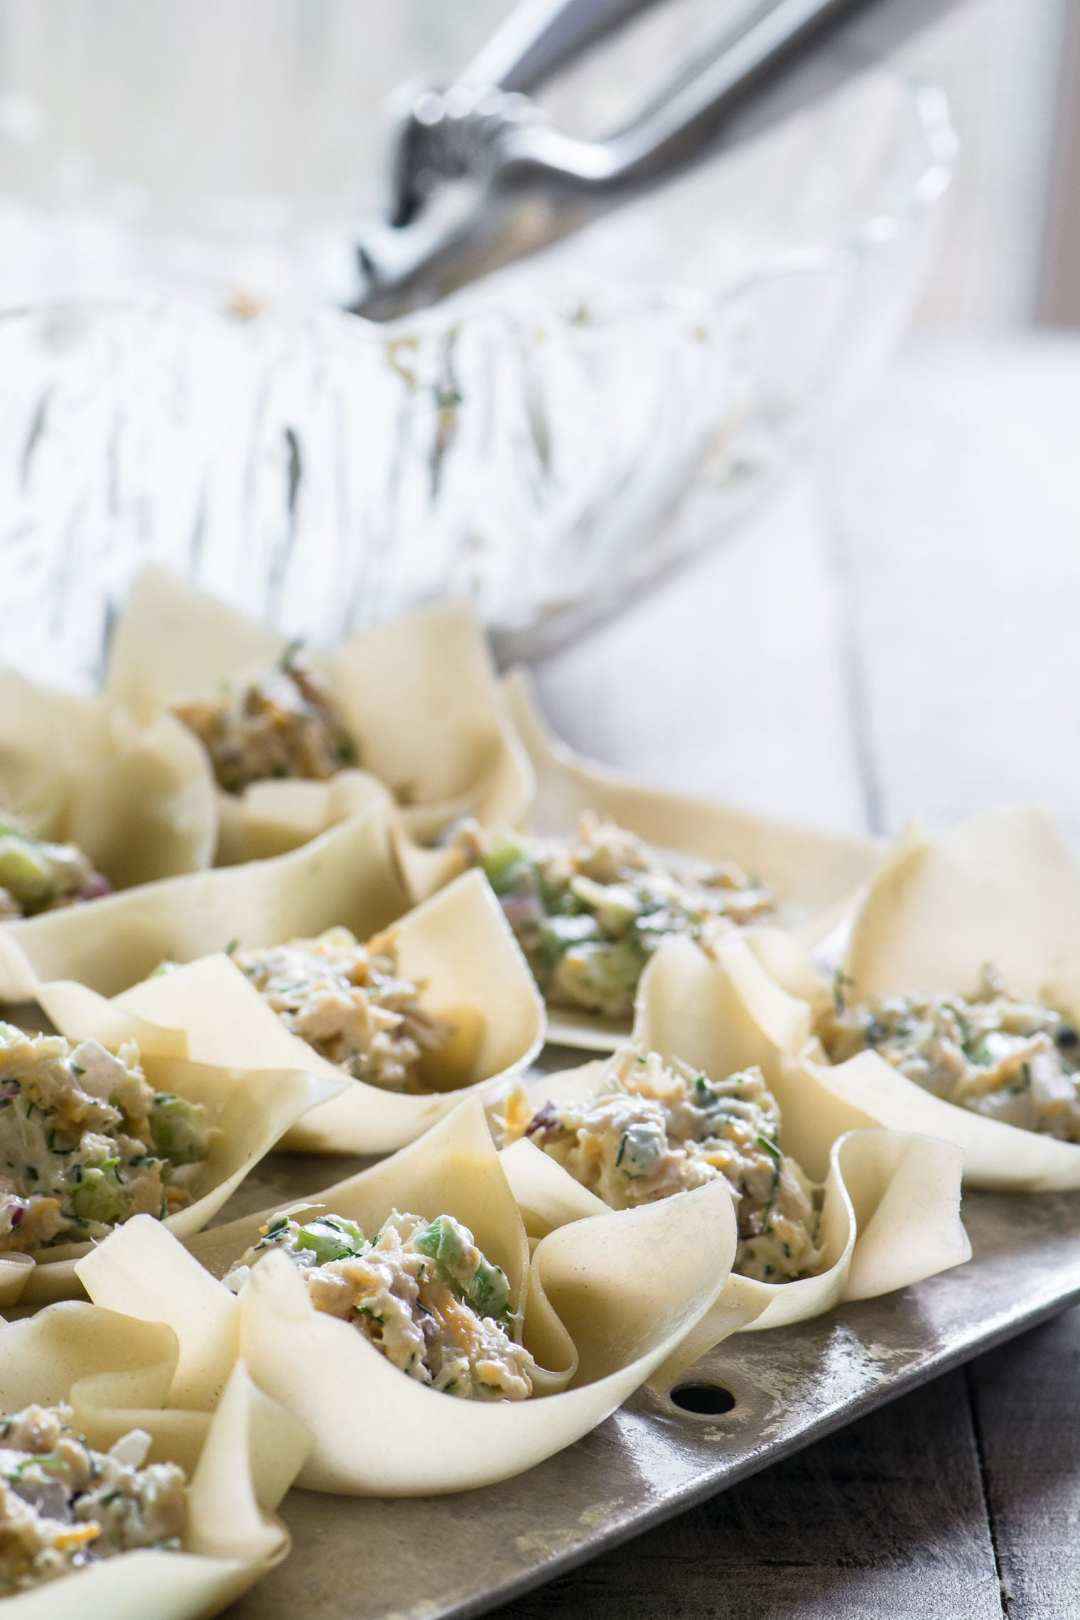 Spicy Tuna Wonton Cups, an easy hot appetizer for the holidays ~ image